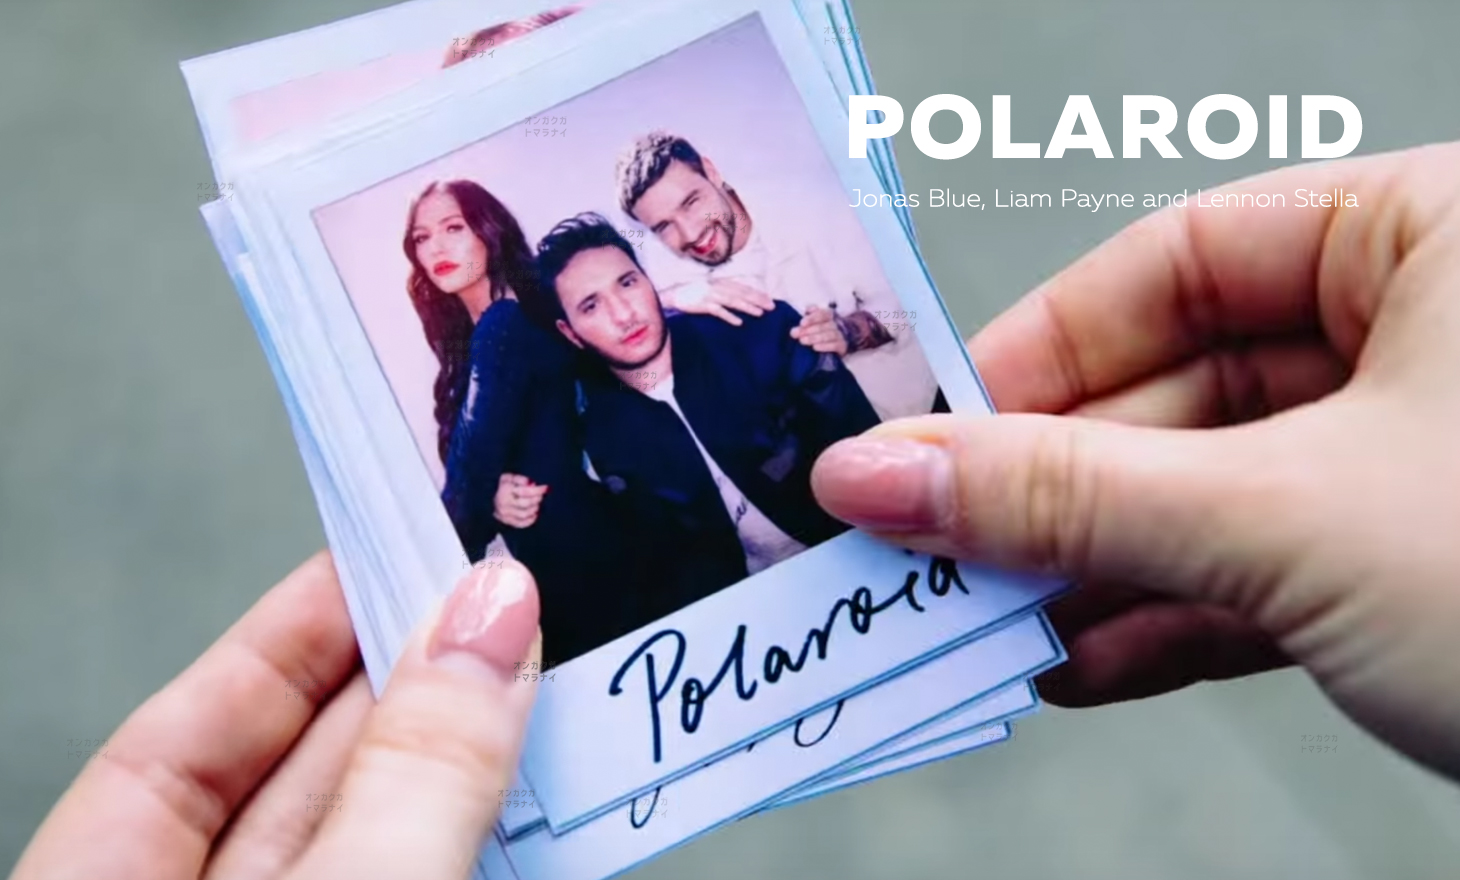 Jonas Blue, Liam Payne and Lennon Stella : Polaroid